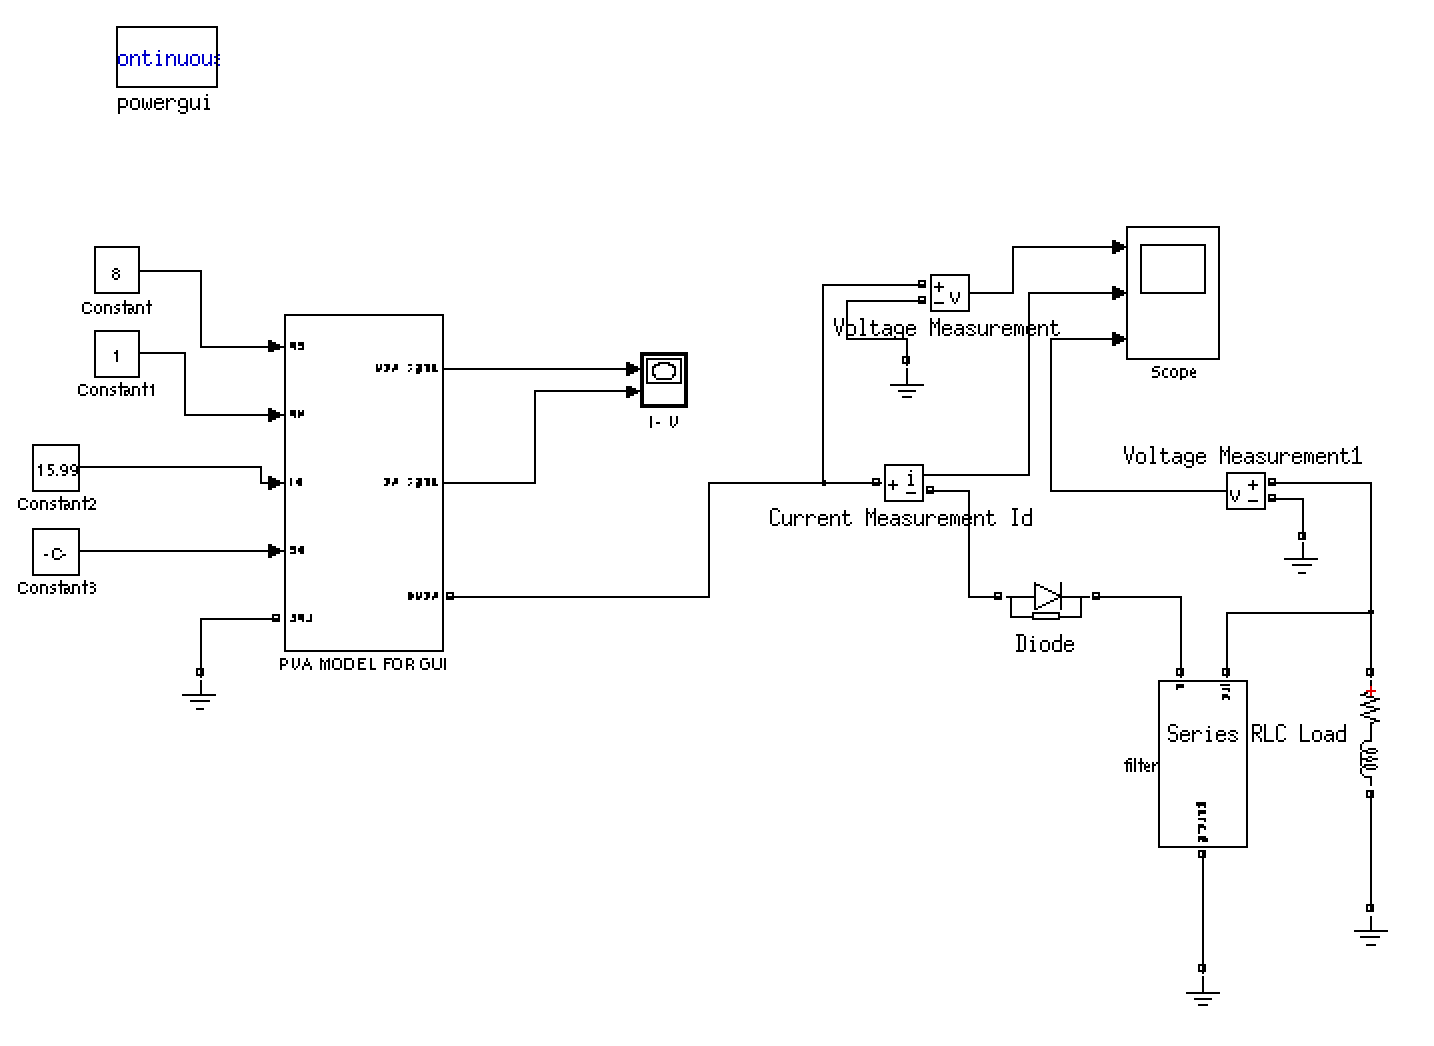 A Photovoltaic Array Simulation Model for MatlabSimulink